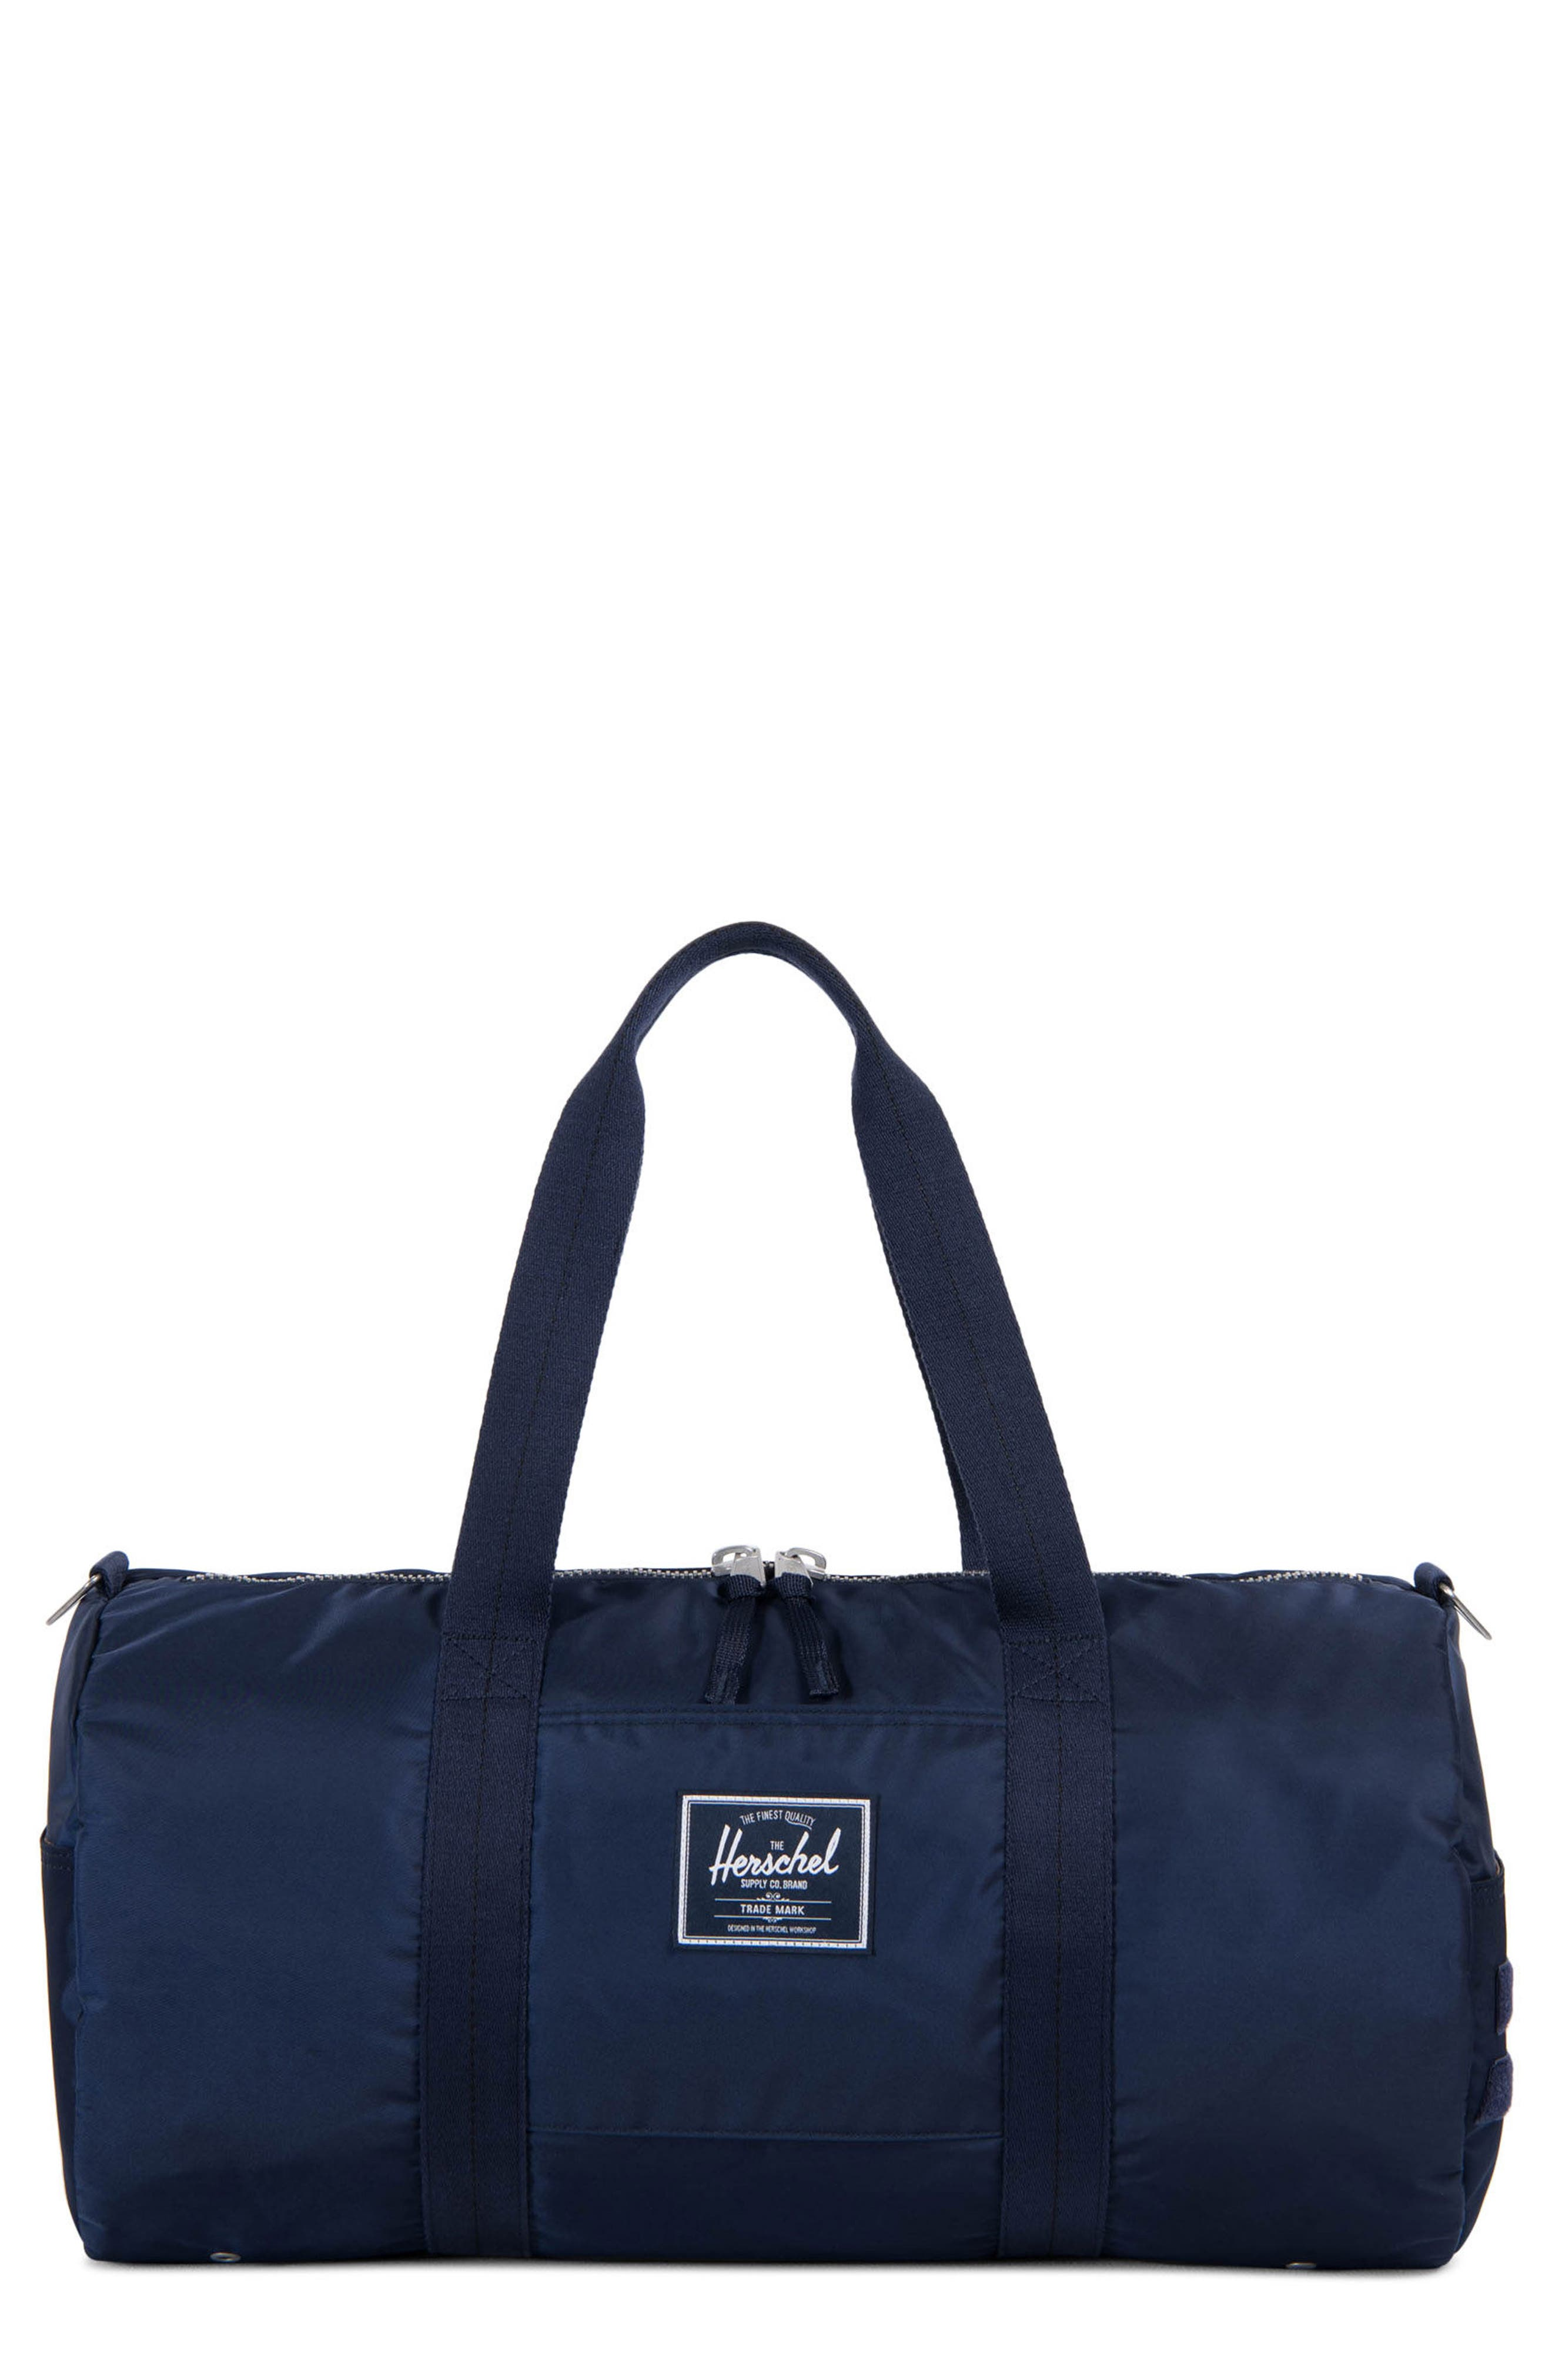 Herschel Supply Co. Sutton Surplus Collection Duffel Bag